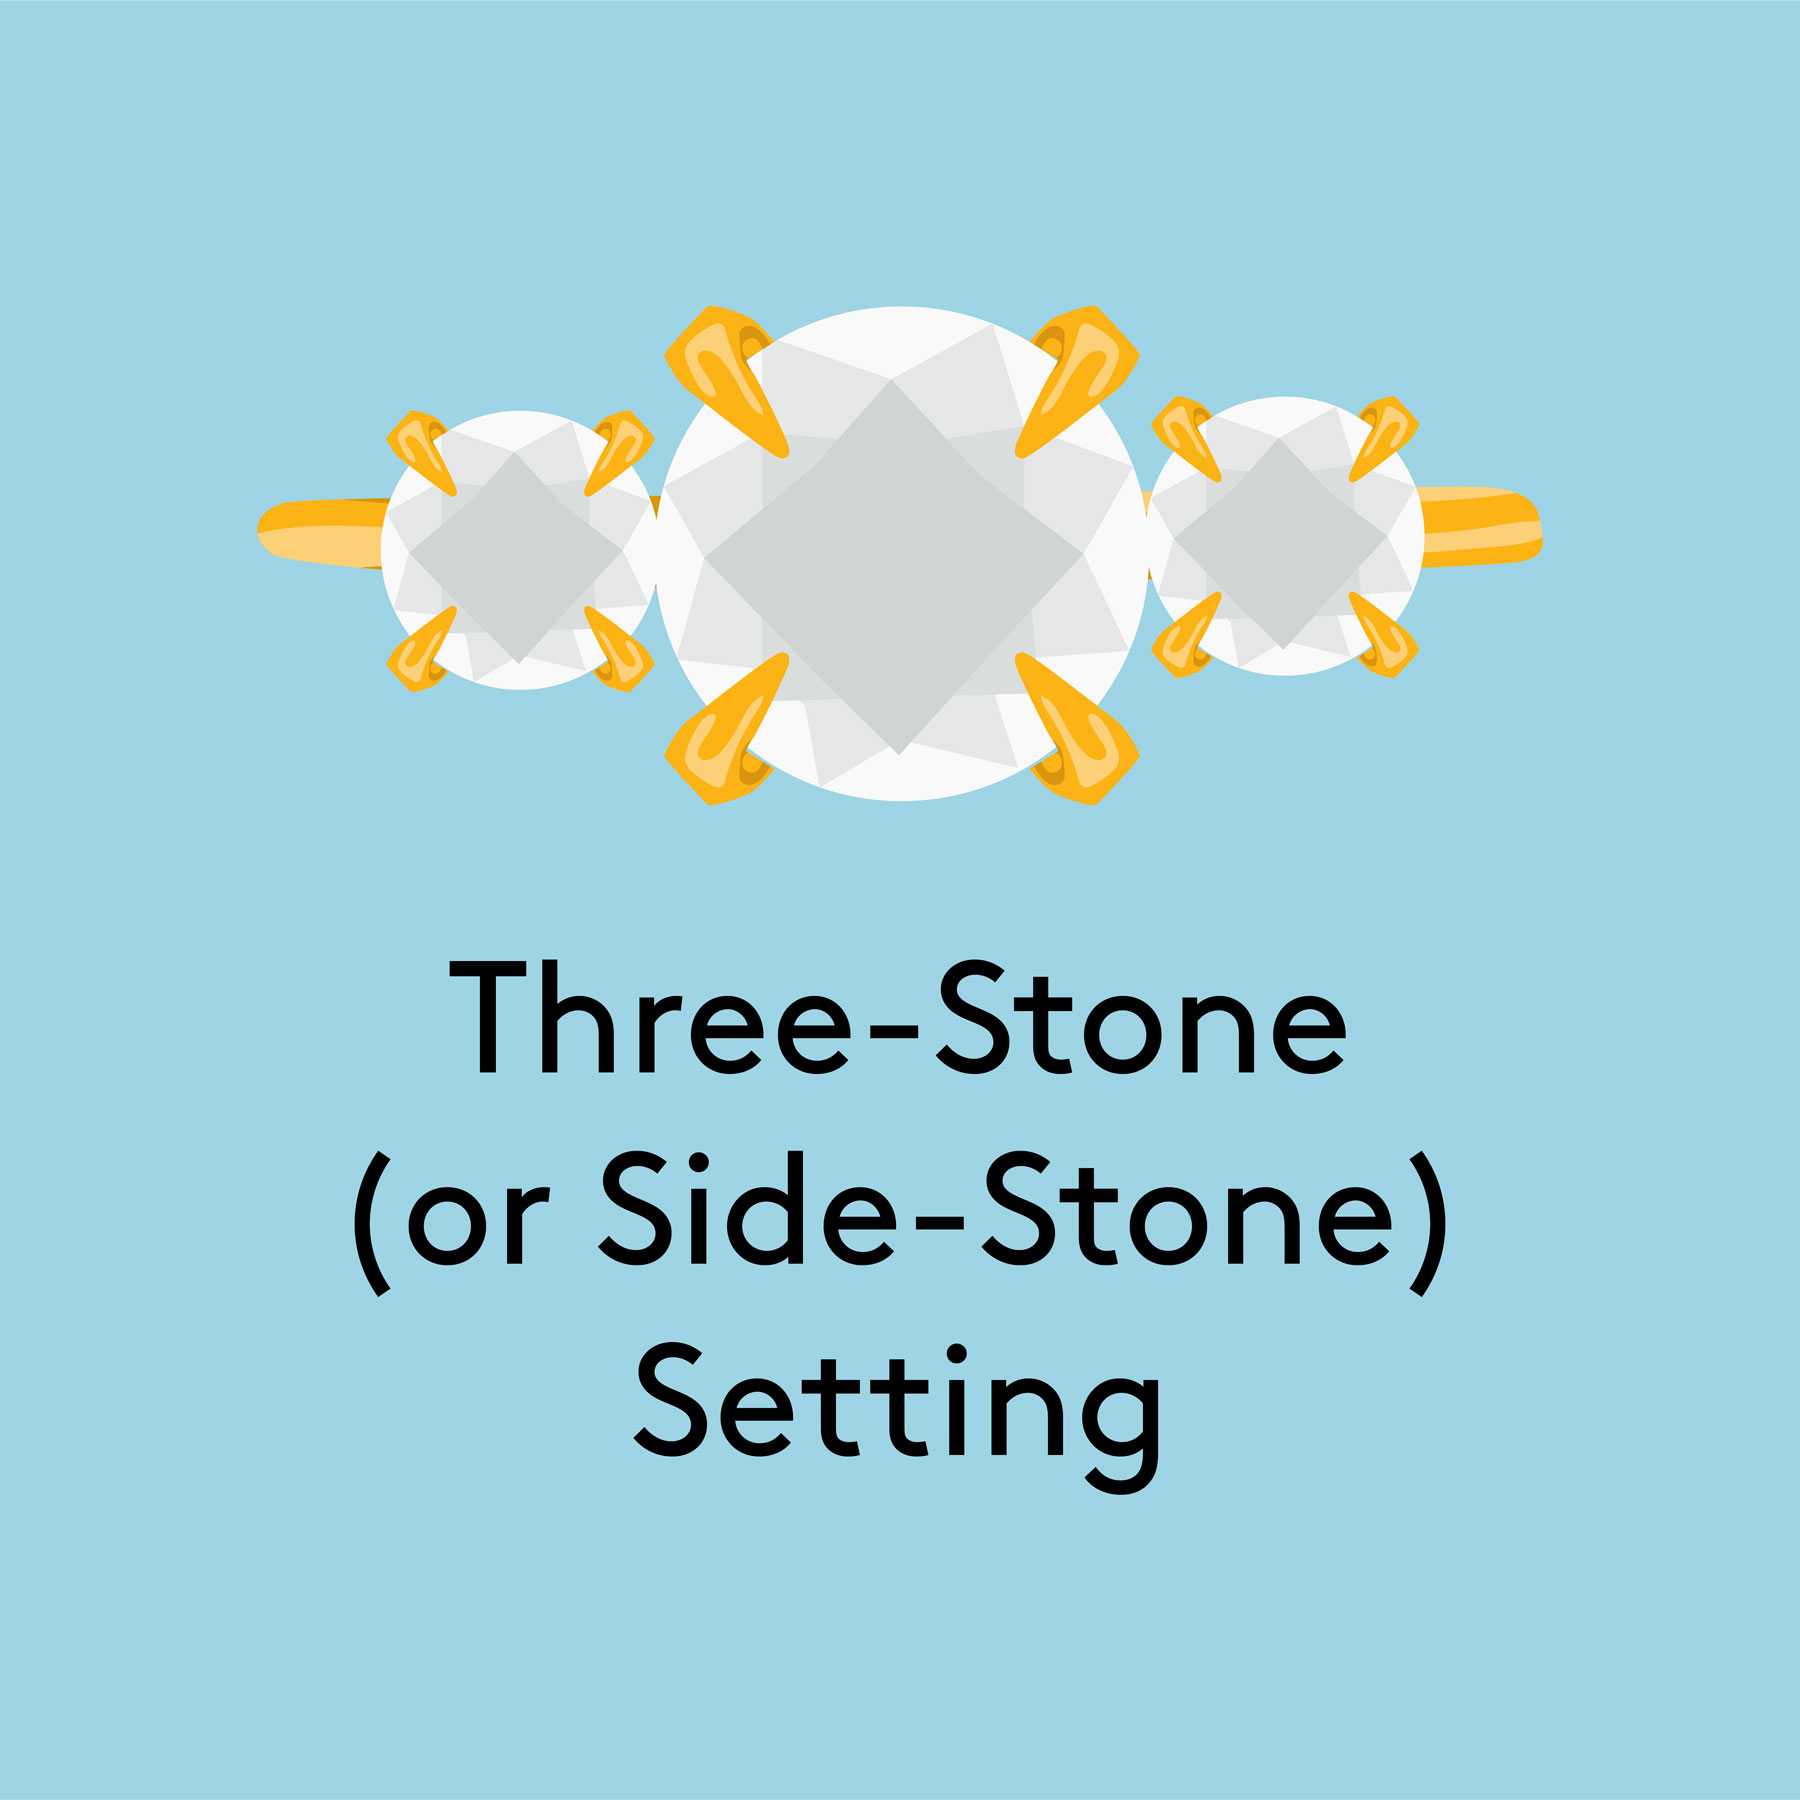 Types of engagement ring settings - Three-stone (or side-stone) setting